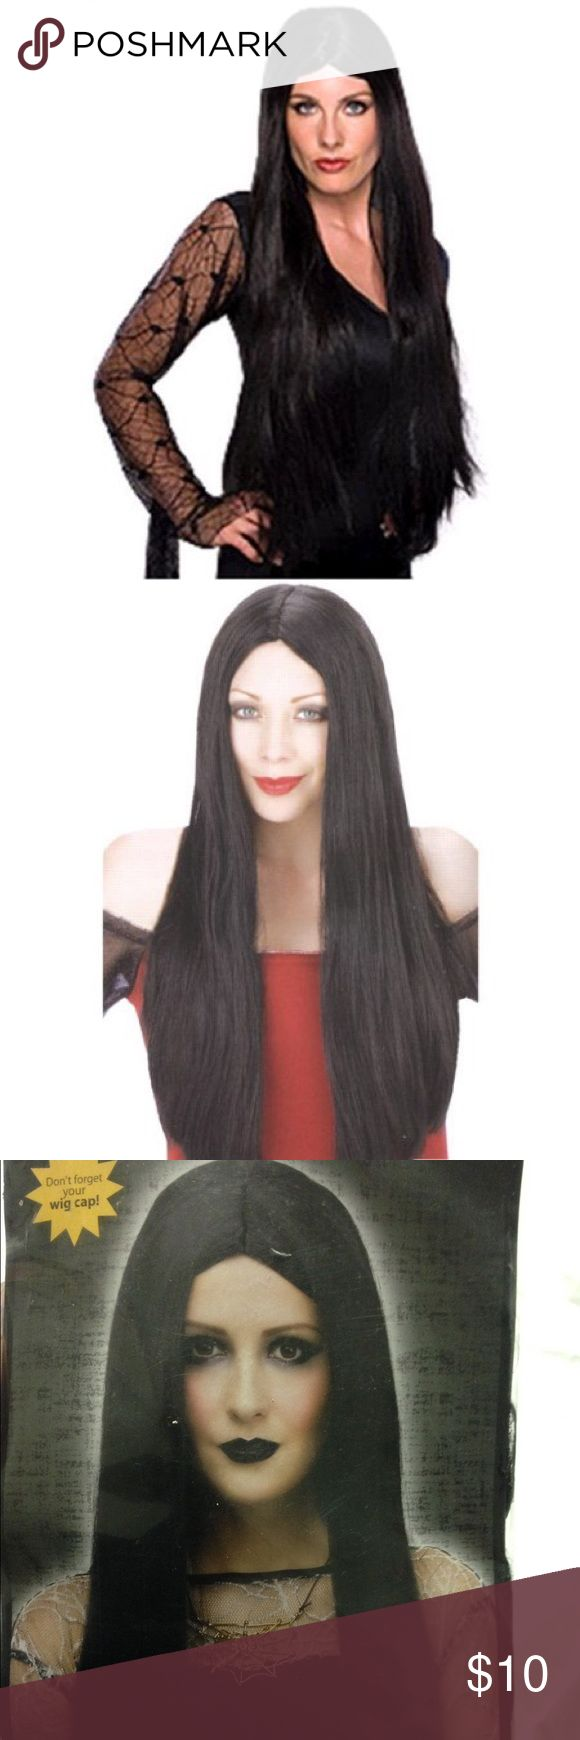 💀 adult witch wig 🔙 Adult black witch wig 24 inches Fabric: 100% polyester Hair: 100% olefin Punk Rock Accesories Accessories Hair Accessories